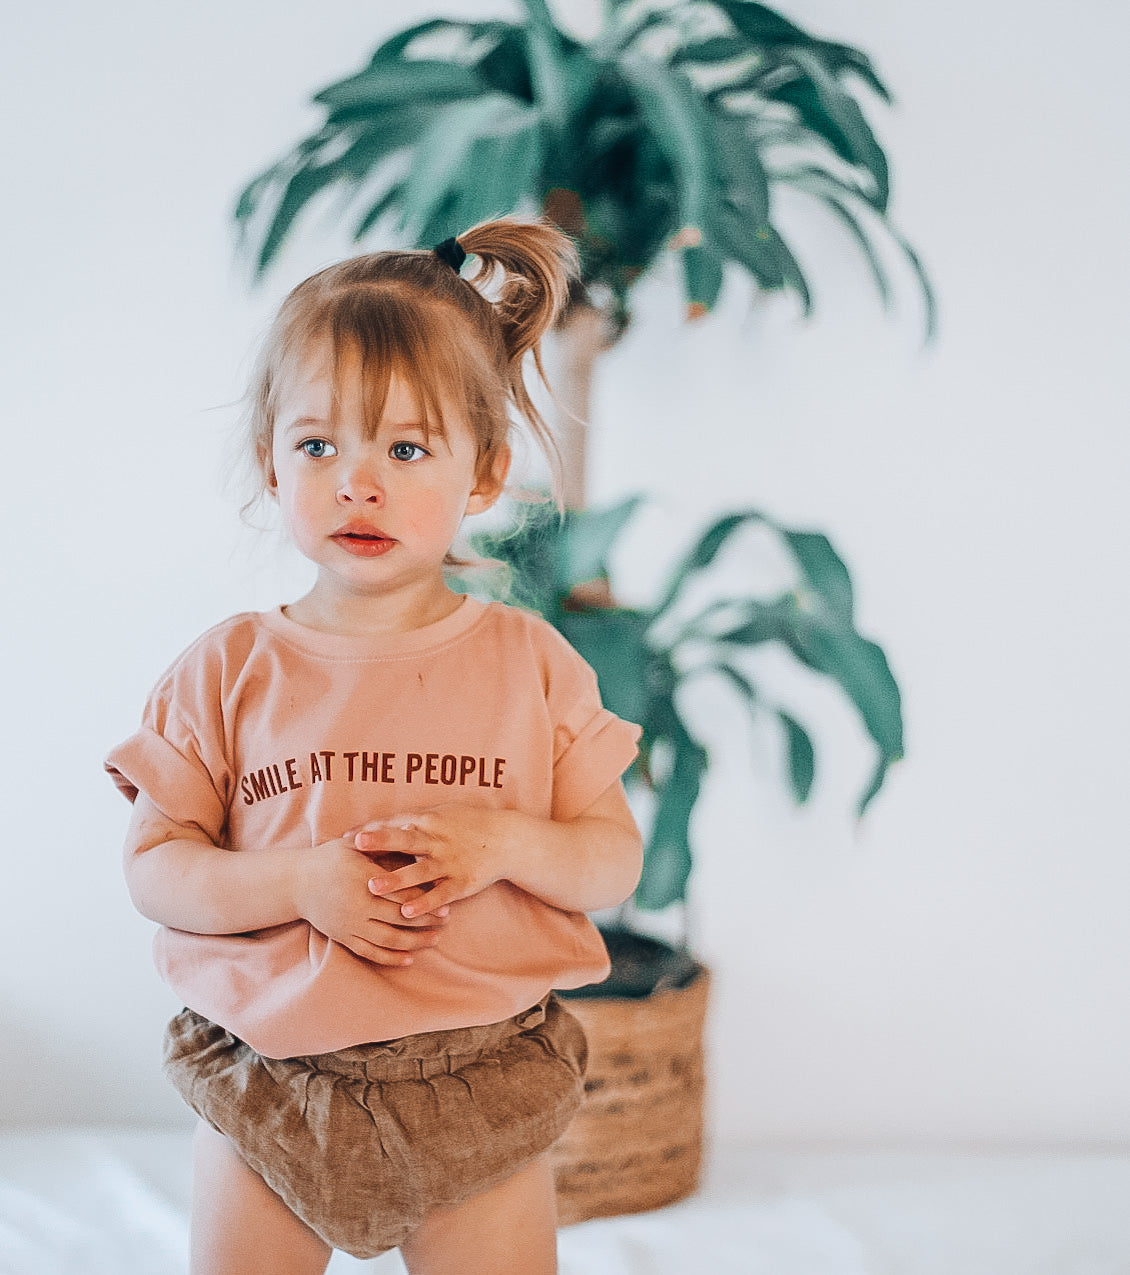 SMILE AT THE PEOPLE - Short Sleeve Toddler Tee